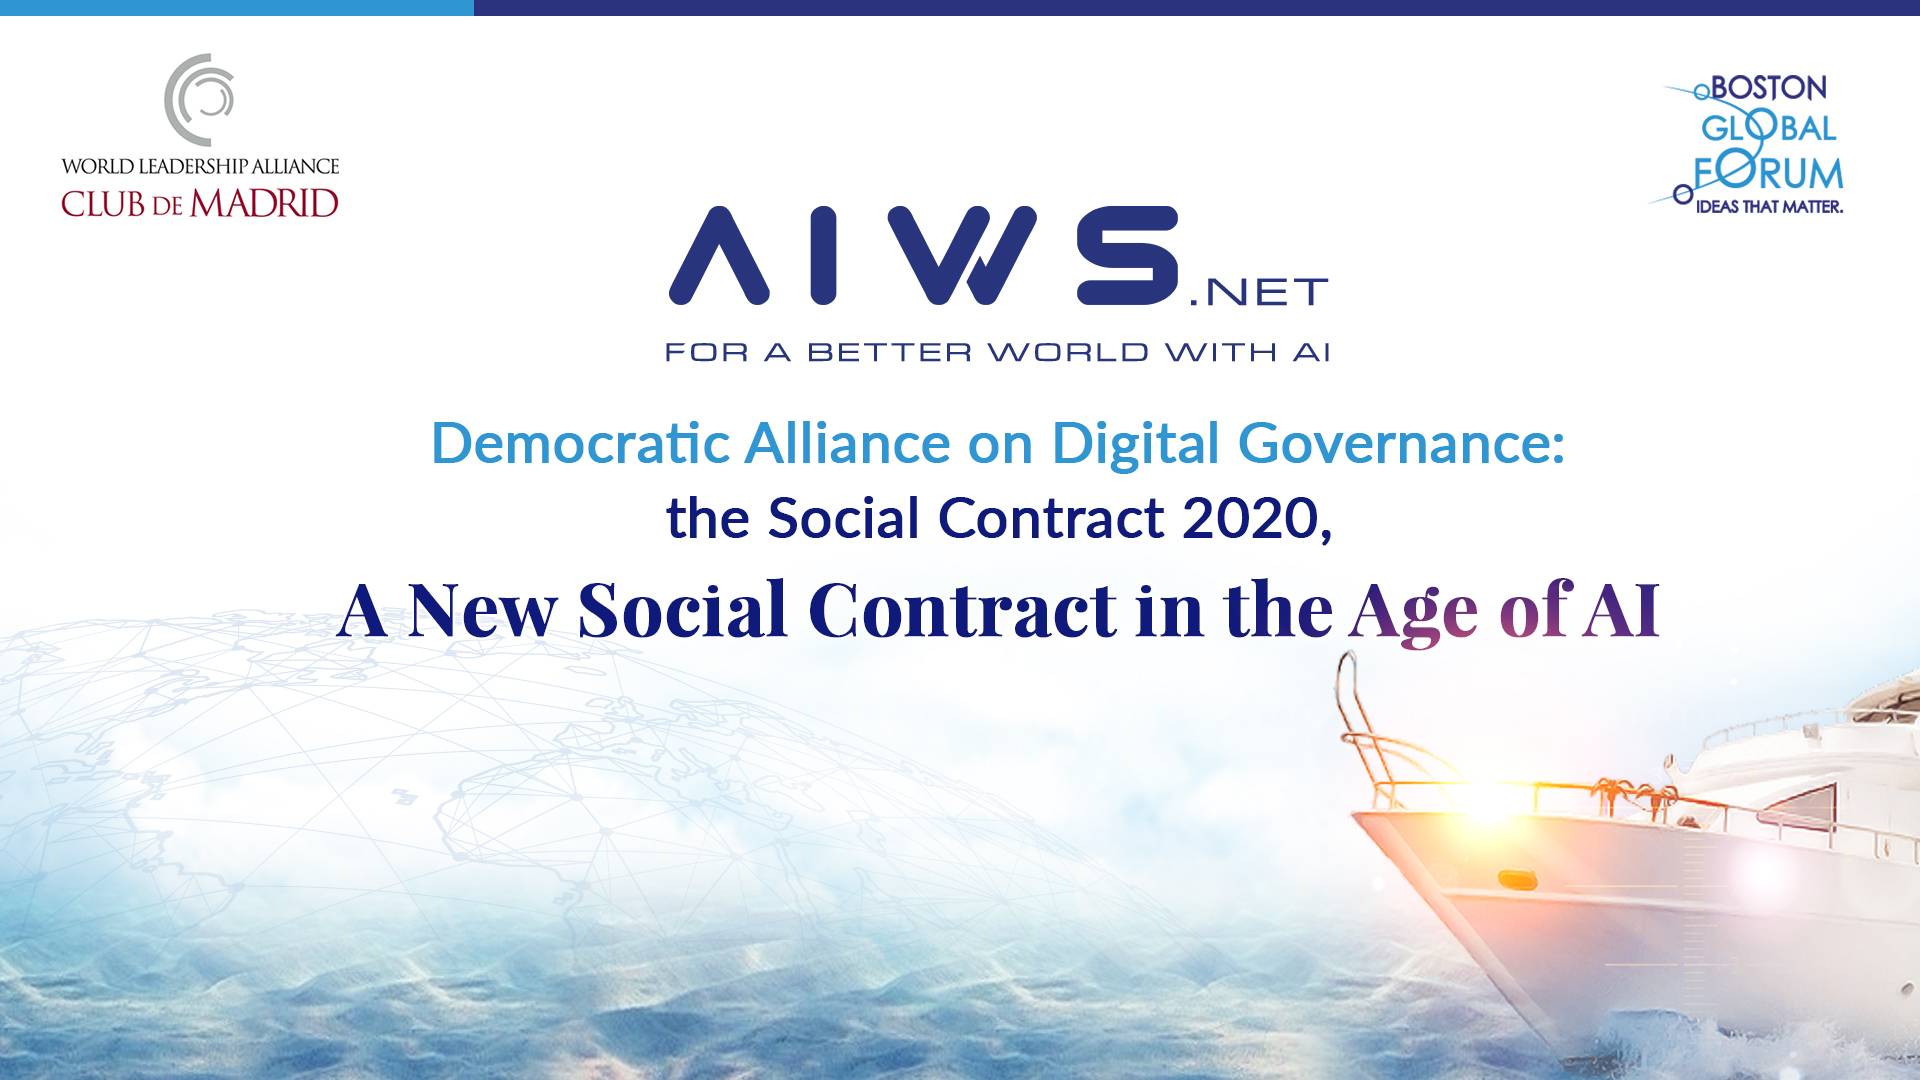 A New Social Contract in the Age of Artificial Intelligence – Framework For Social Contract 2020